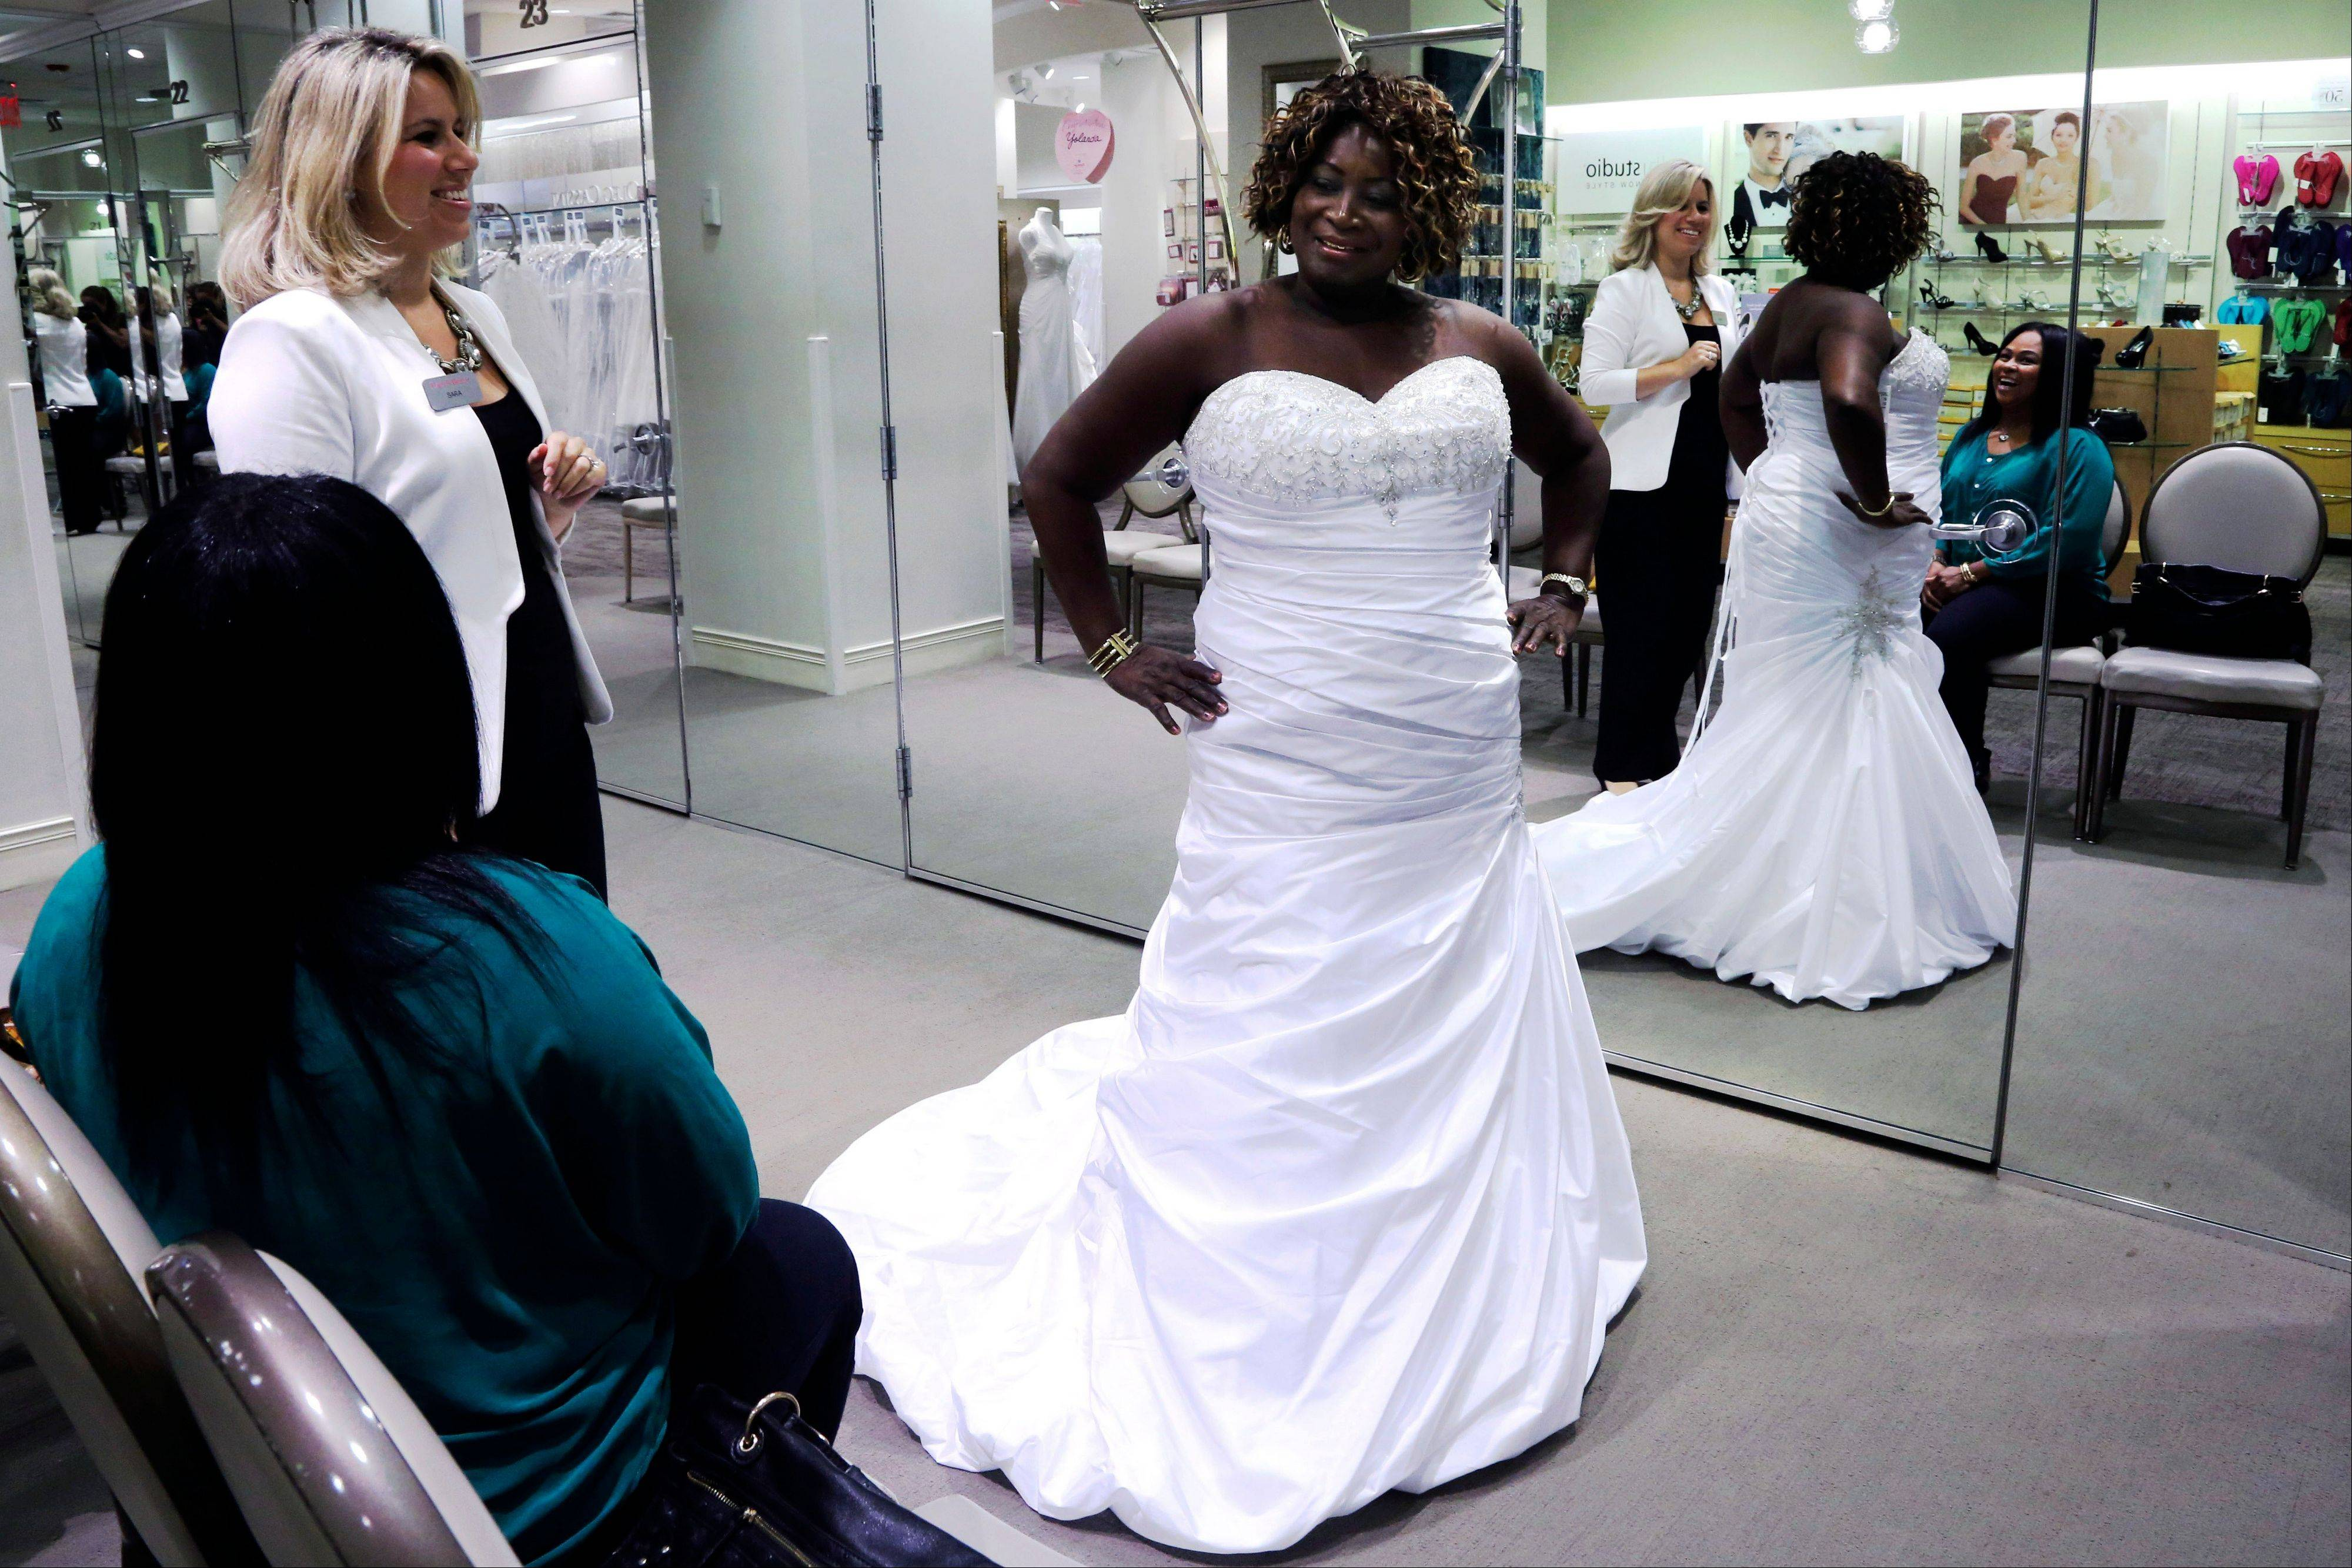 Sara Musillo, assistant store manager at David's Bridal in New York assists Yolanda Royal, 64, as she tries on wedding dresses with her niece Angelic Lavine.